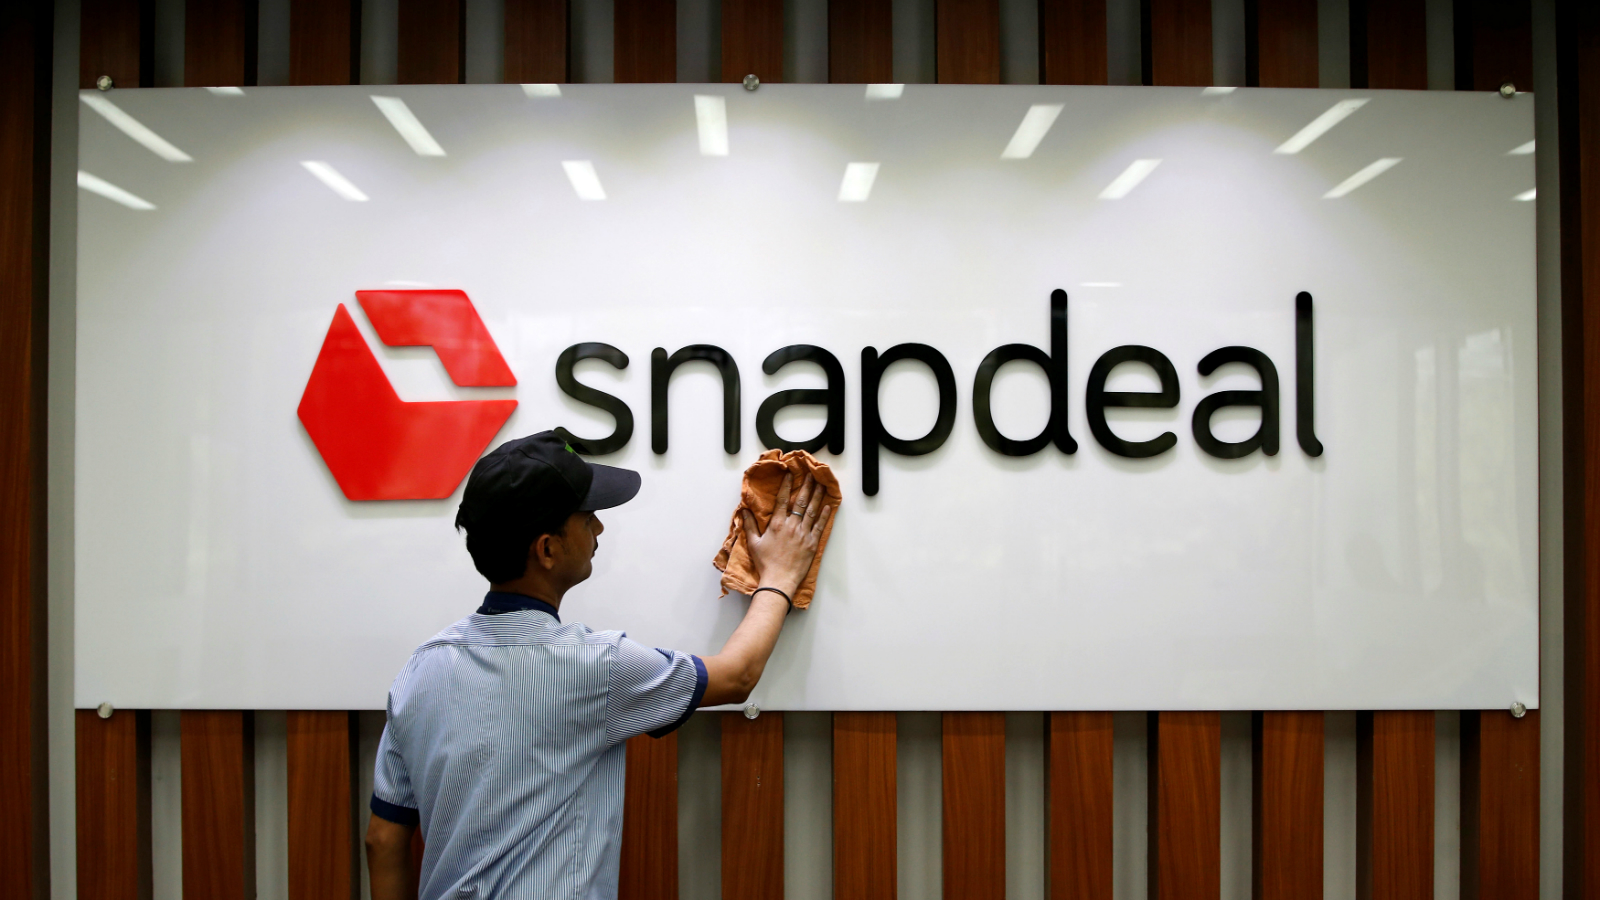 Snapchat-Snapdeal-India